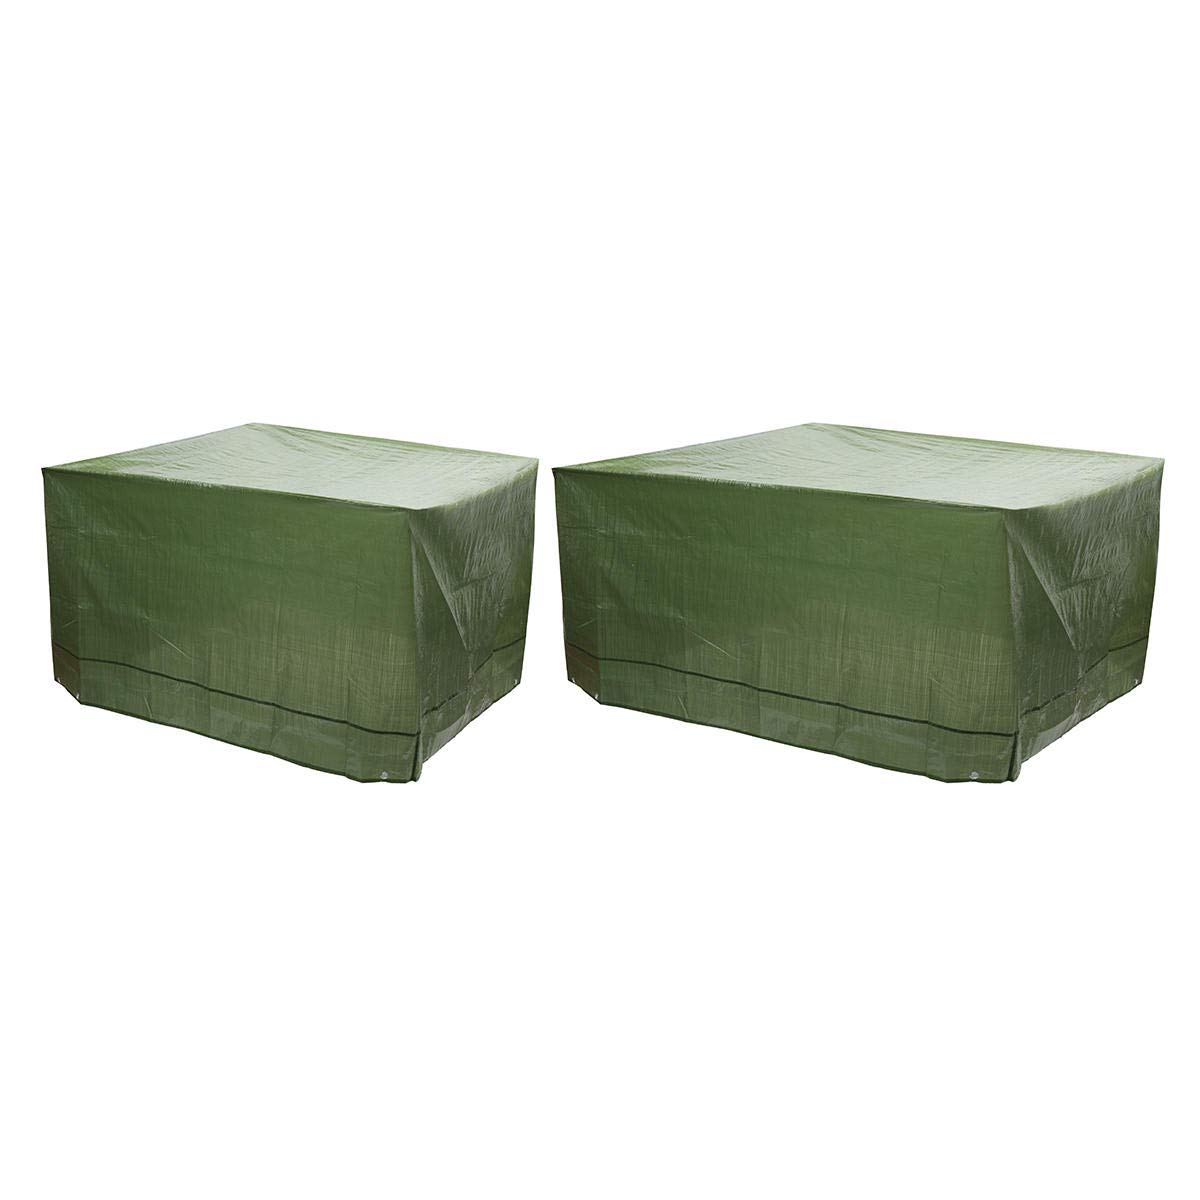 Stock_Home, Raw Materials, Single New PE Woven Durable Garden Furniture Dustproof and Waterproof Cover ArmyGreen - (Size: B)